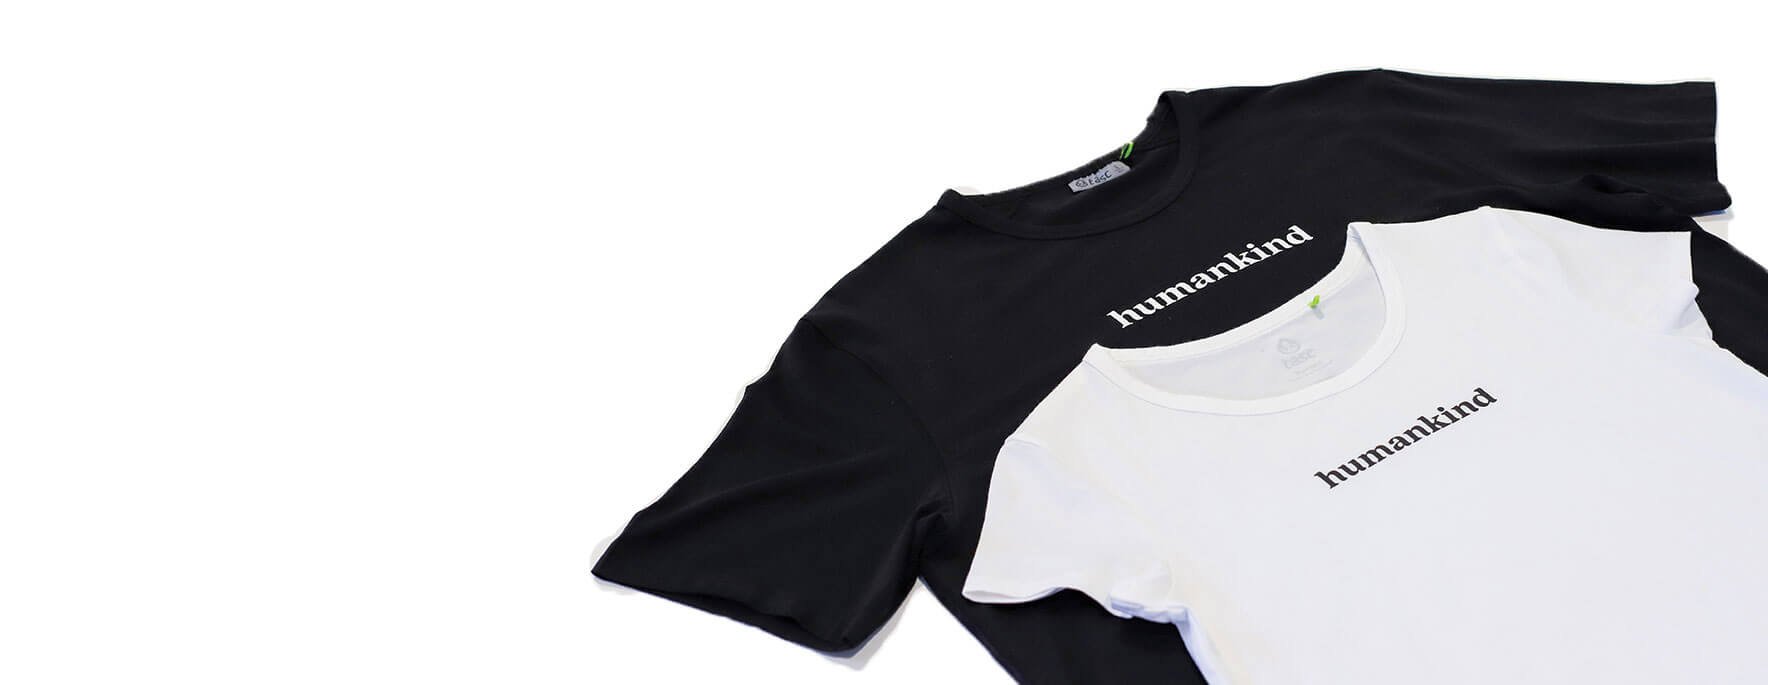 humankind collection